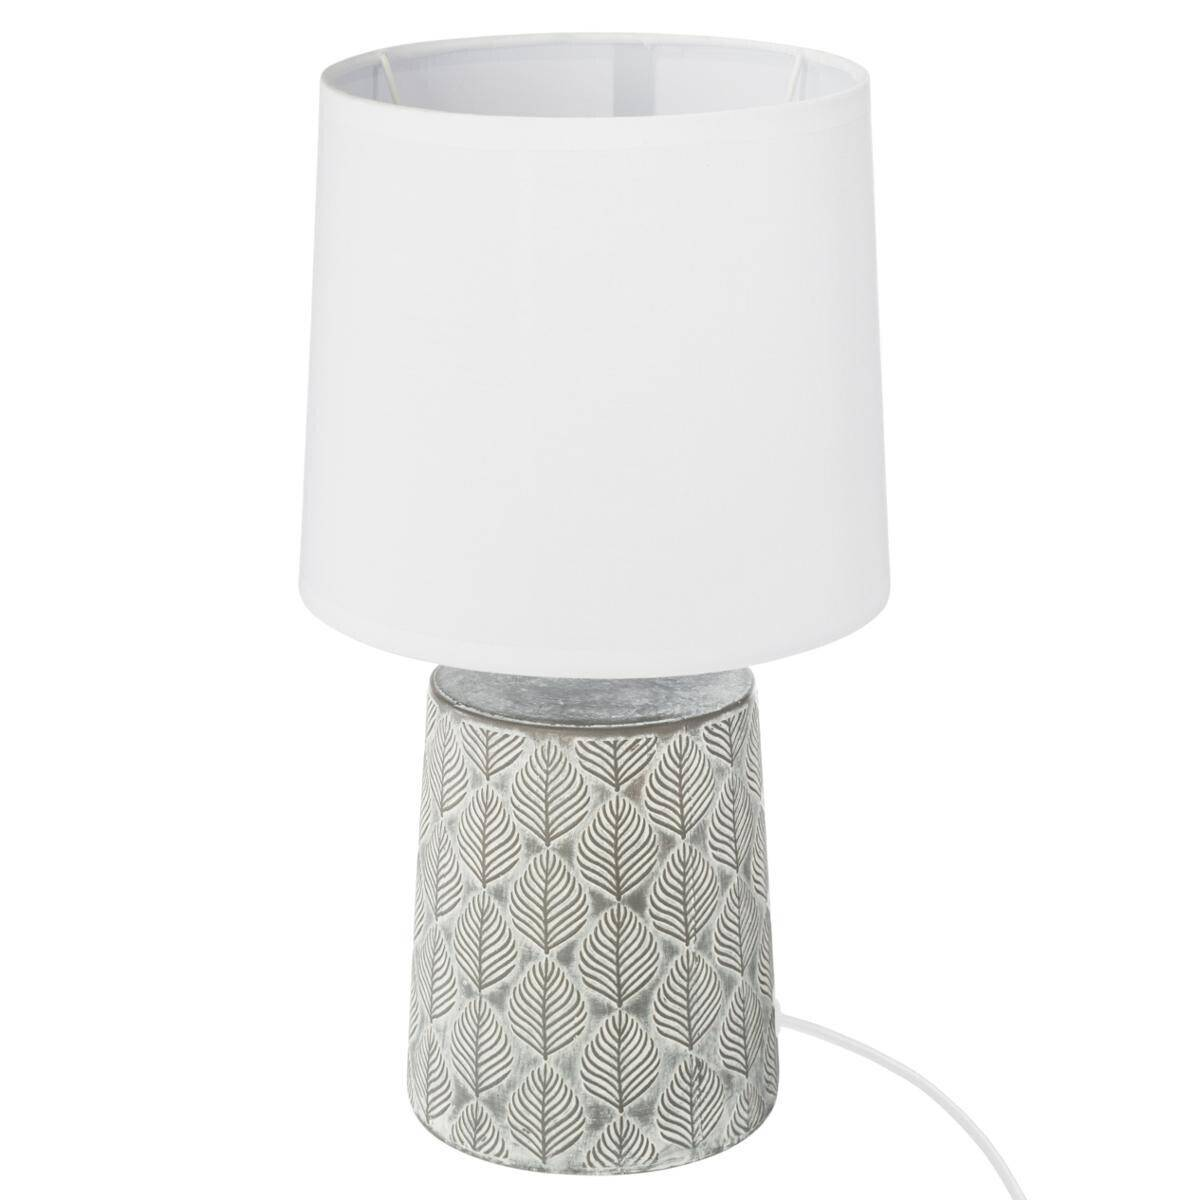 "Atmosphera Lampe ""Cyril"" cylindre en céramique H35,5"